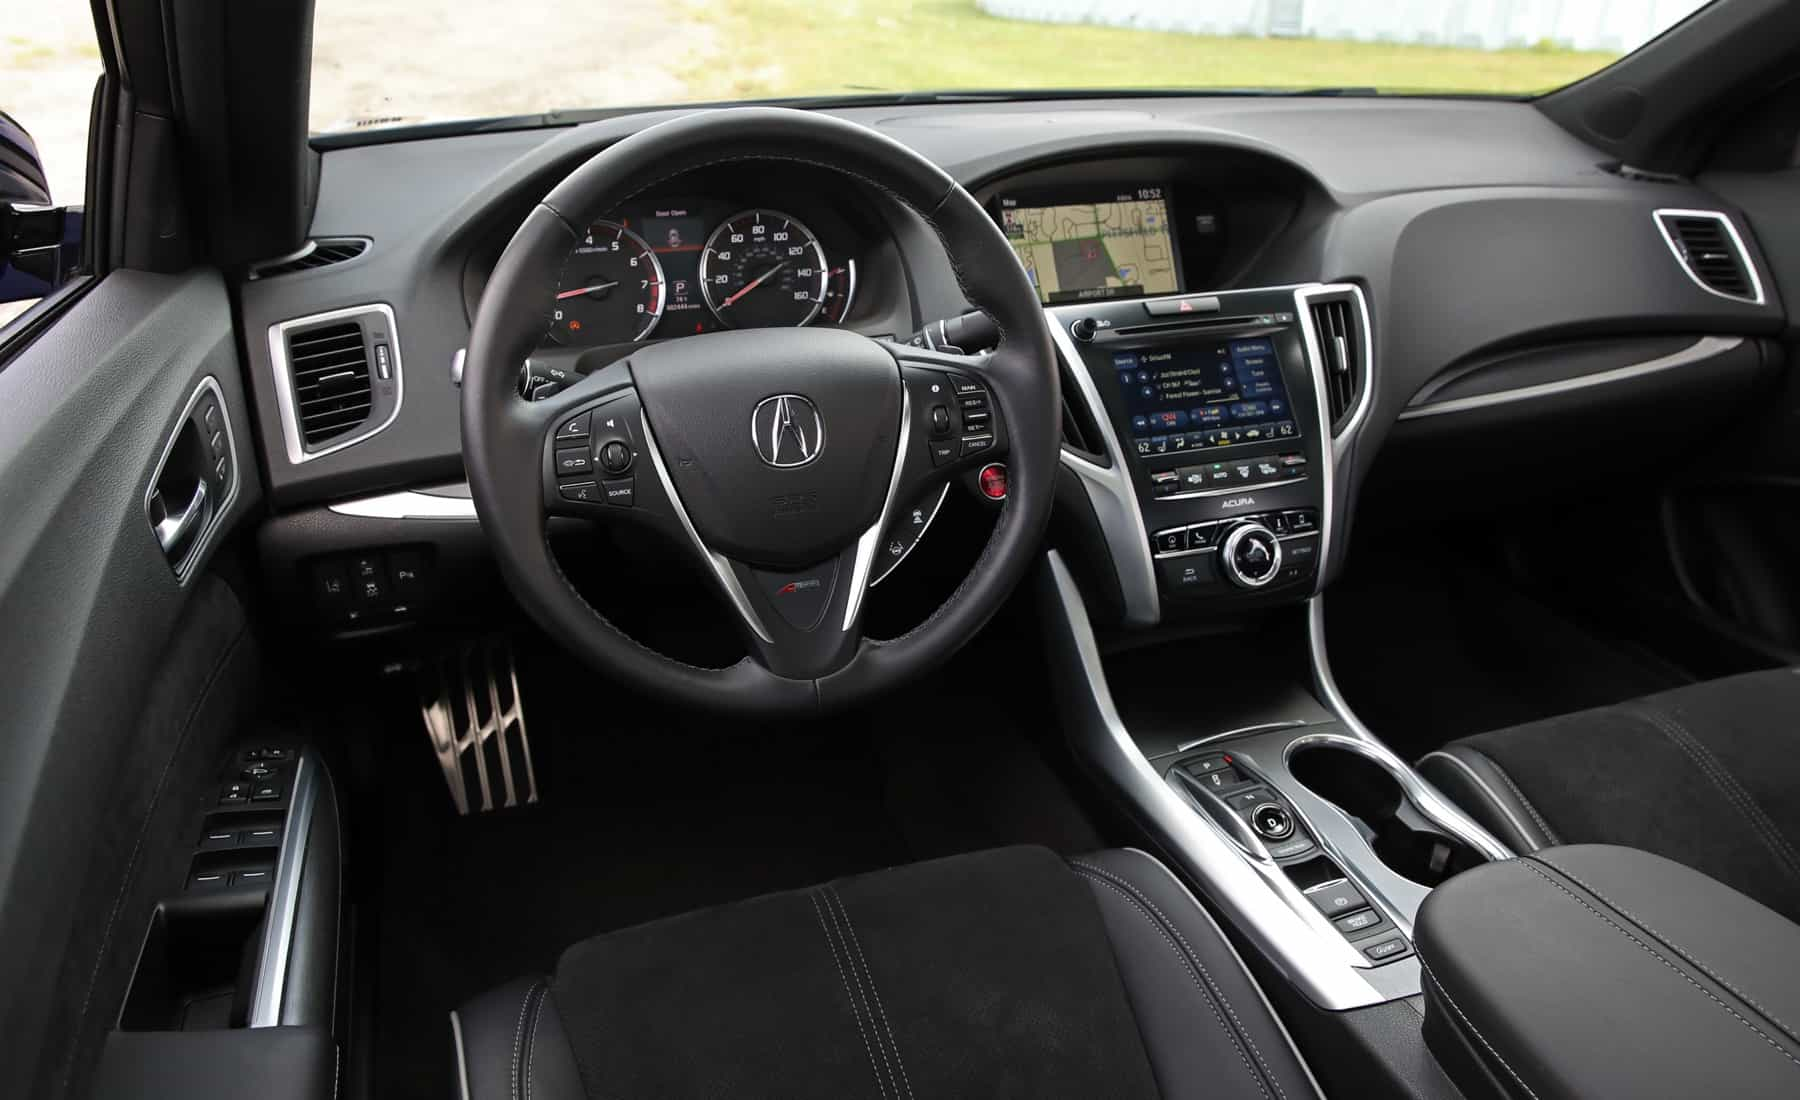 2018 Acura TLX Interior Dashboard And Steering (View 30 of 46)